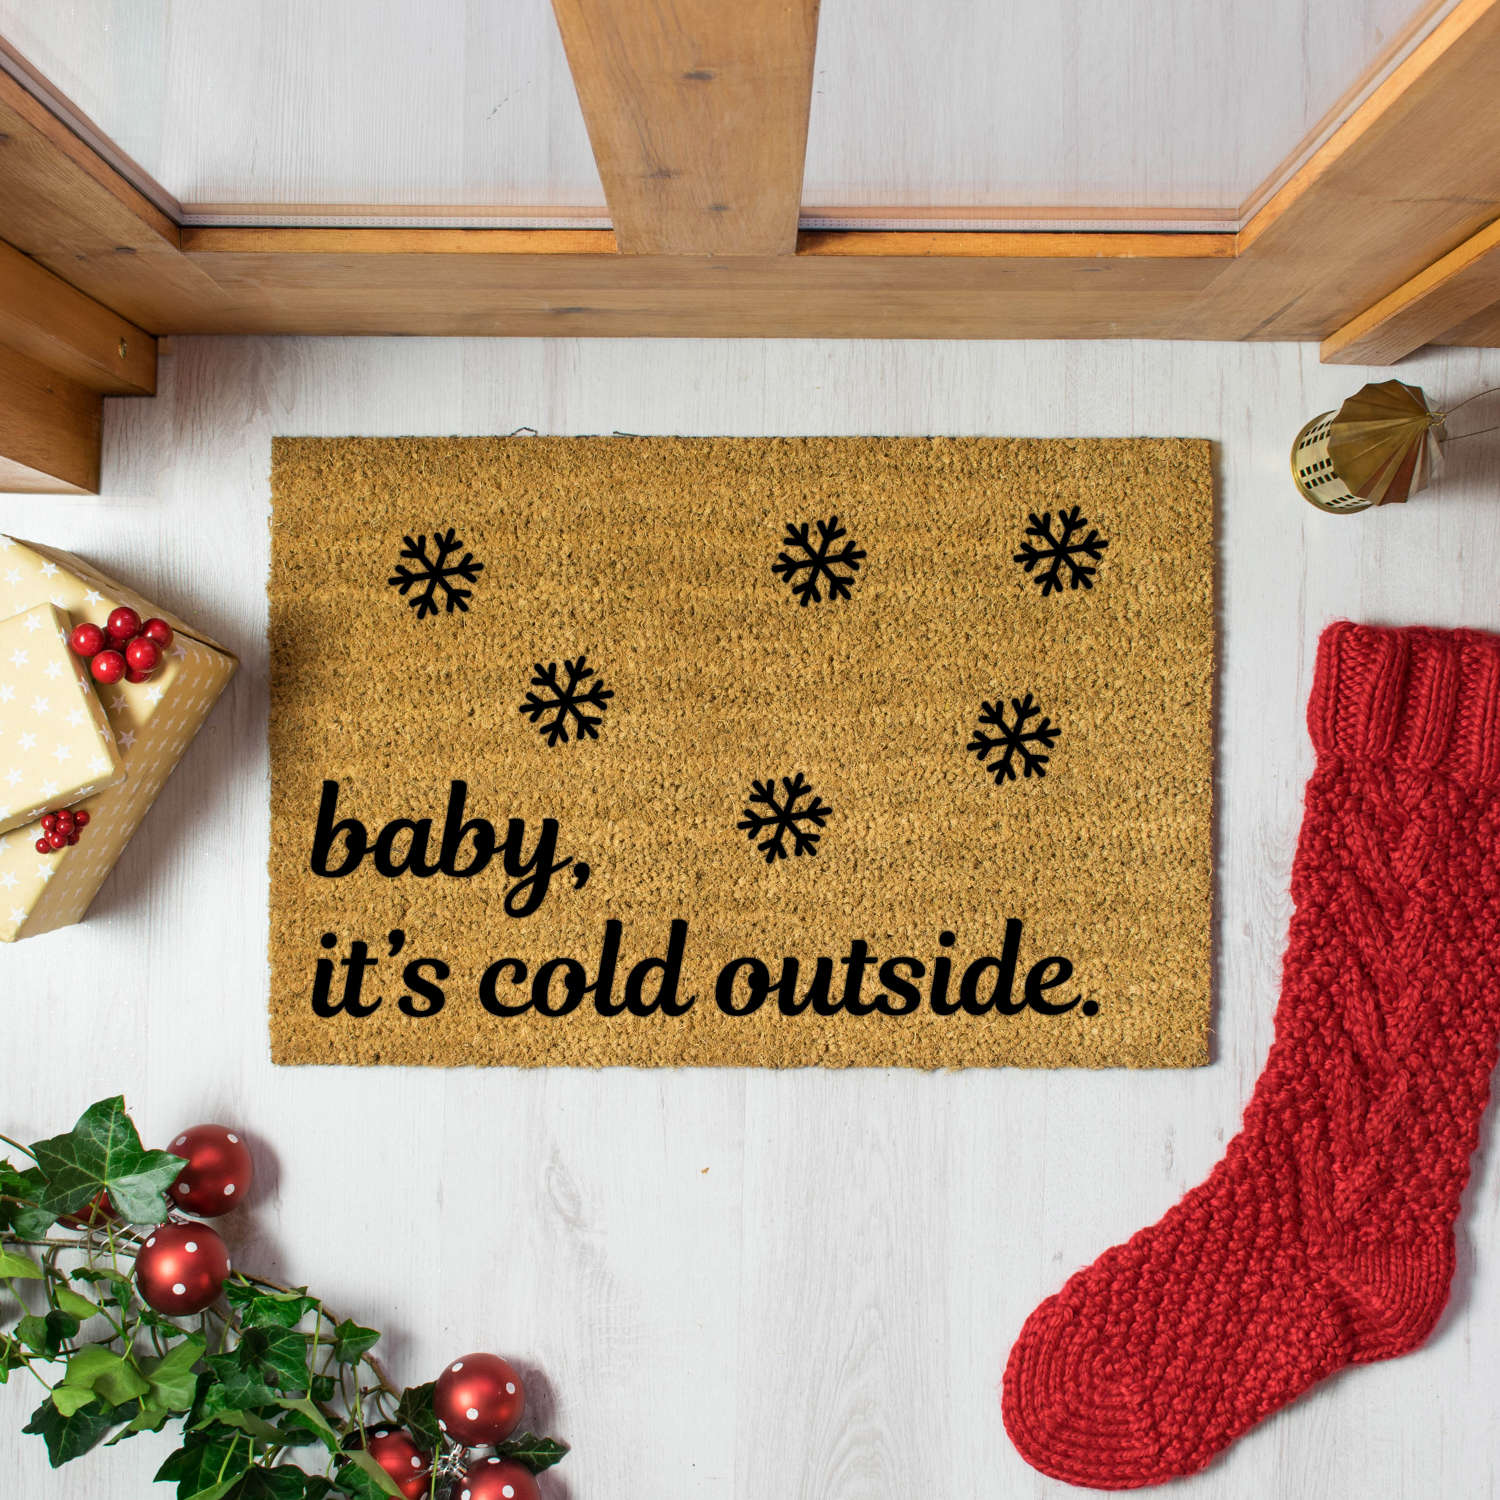 Baby it's cold outside Christmas design doormat